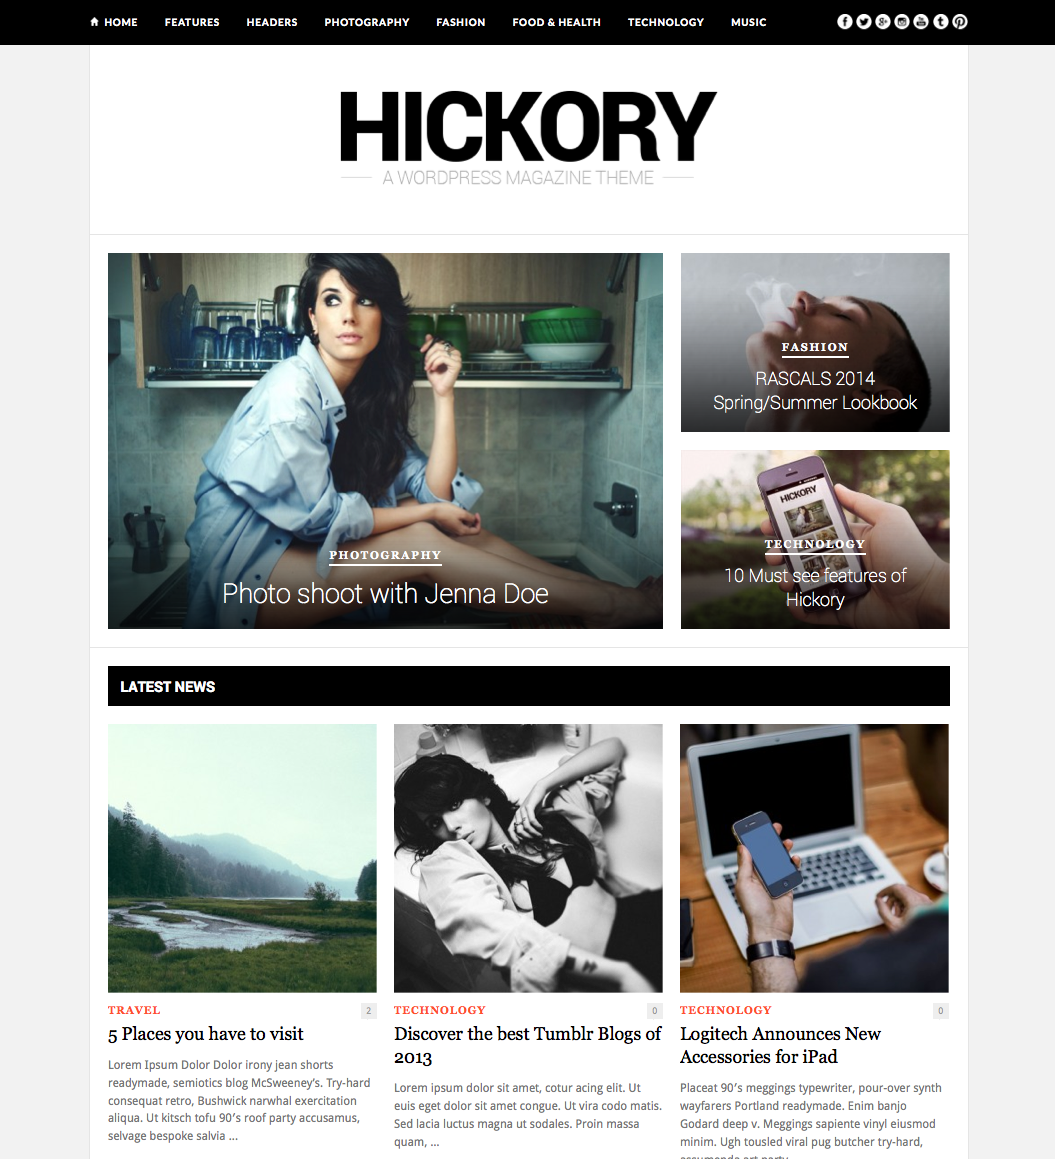 Hickory Magazine Wordpress Theme Wpexplorer